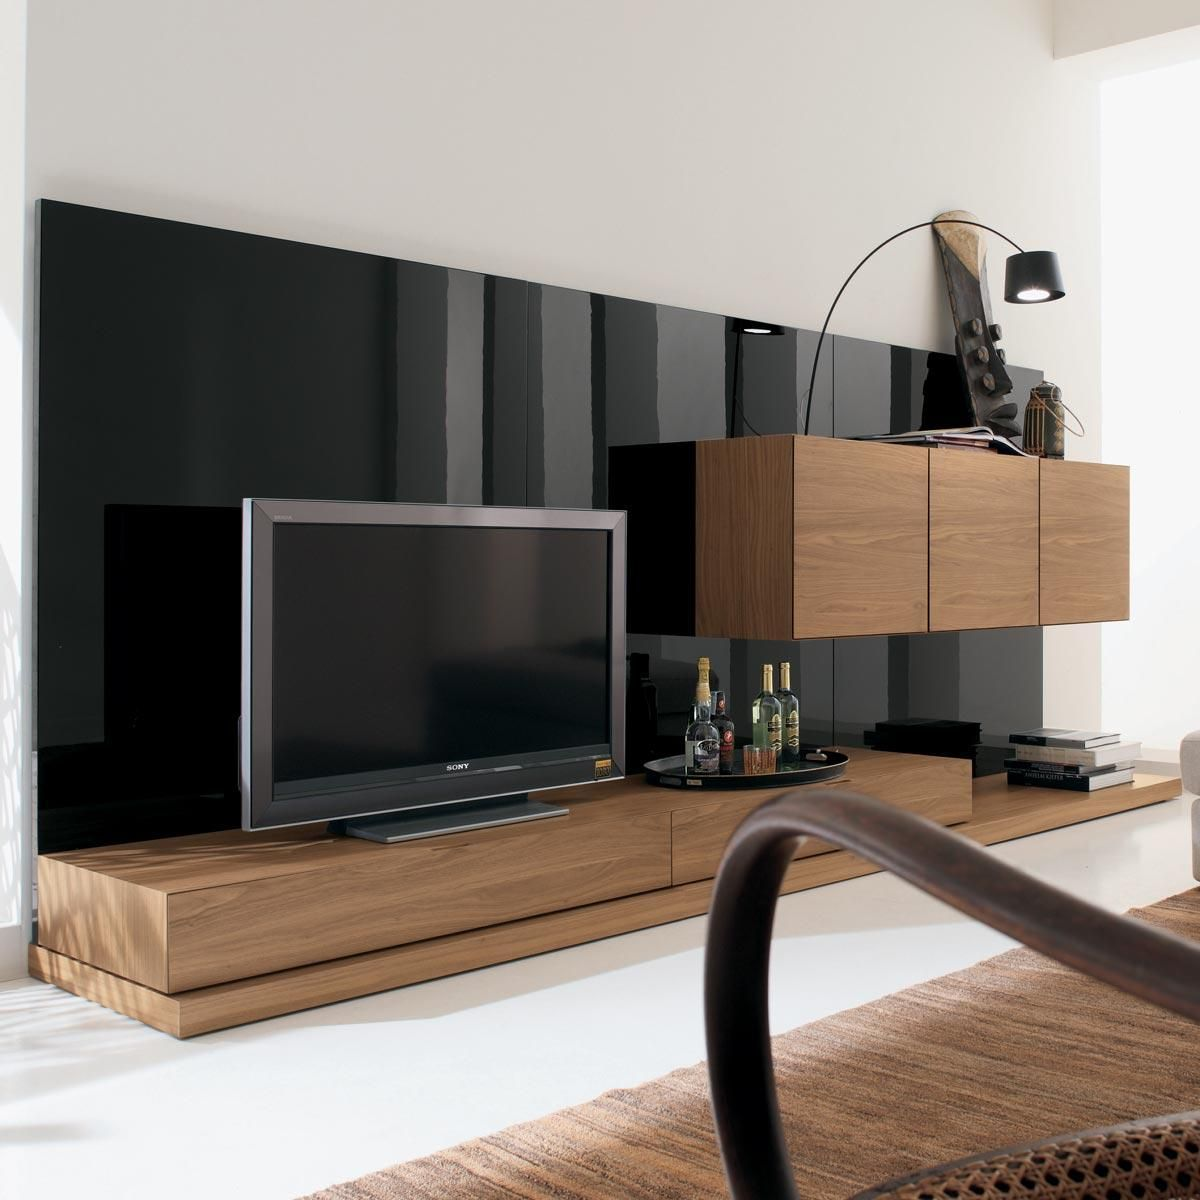 Armani Muebles 13 43 Inspirational Diy Tv Stand Ideas For Your Room Home